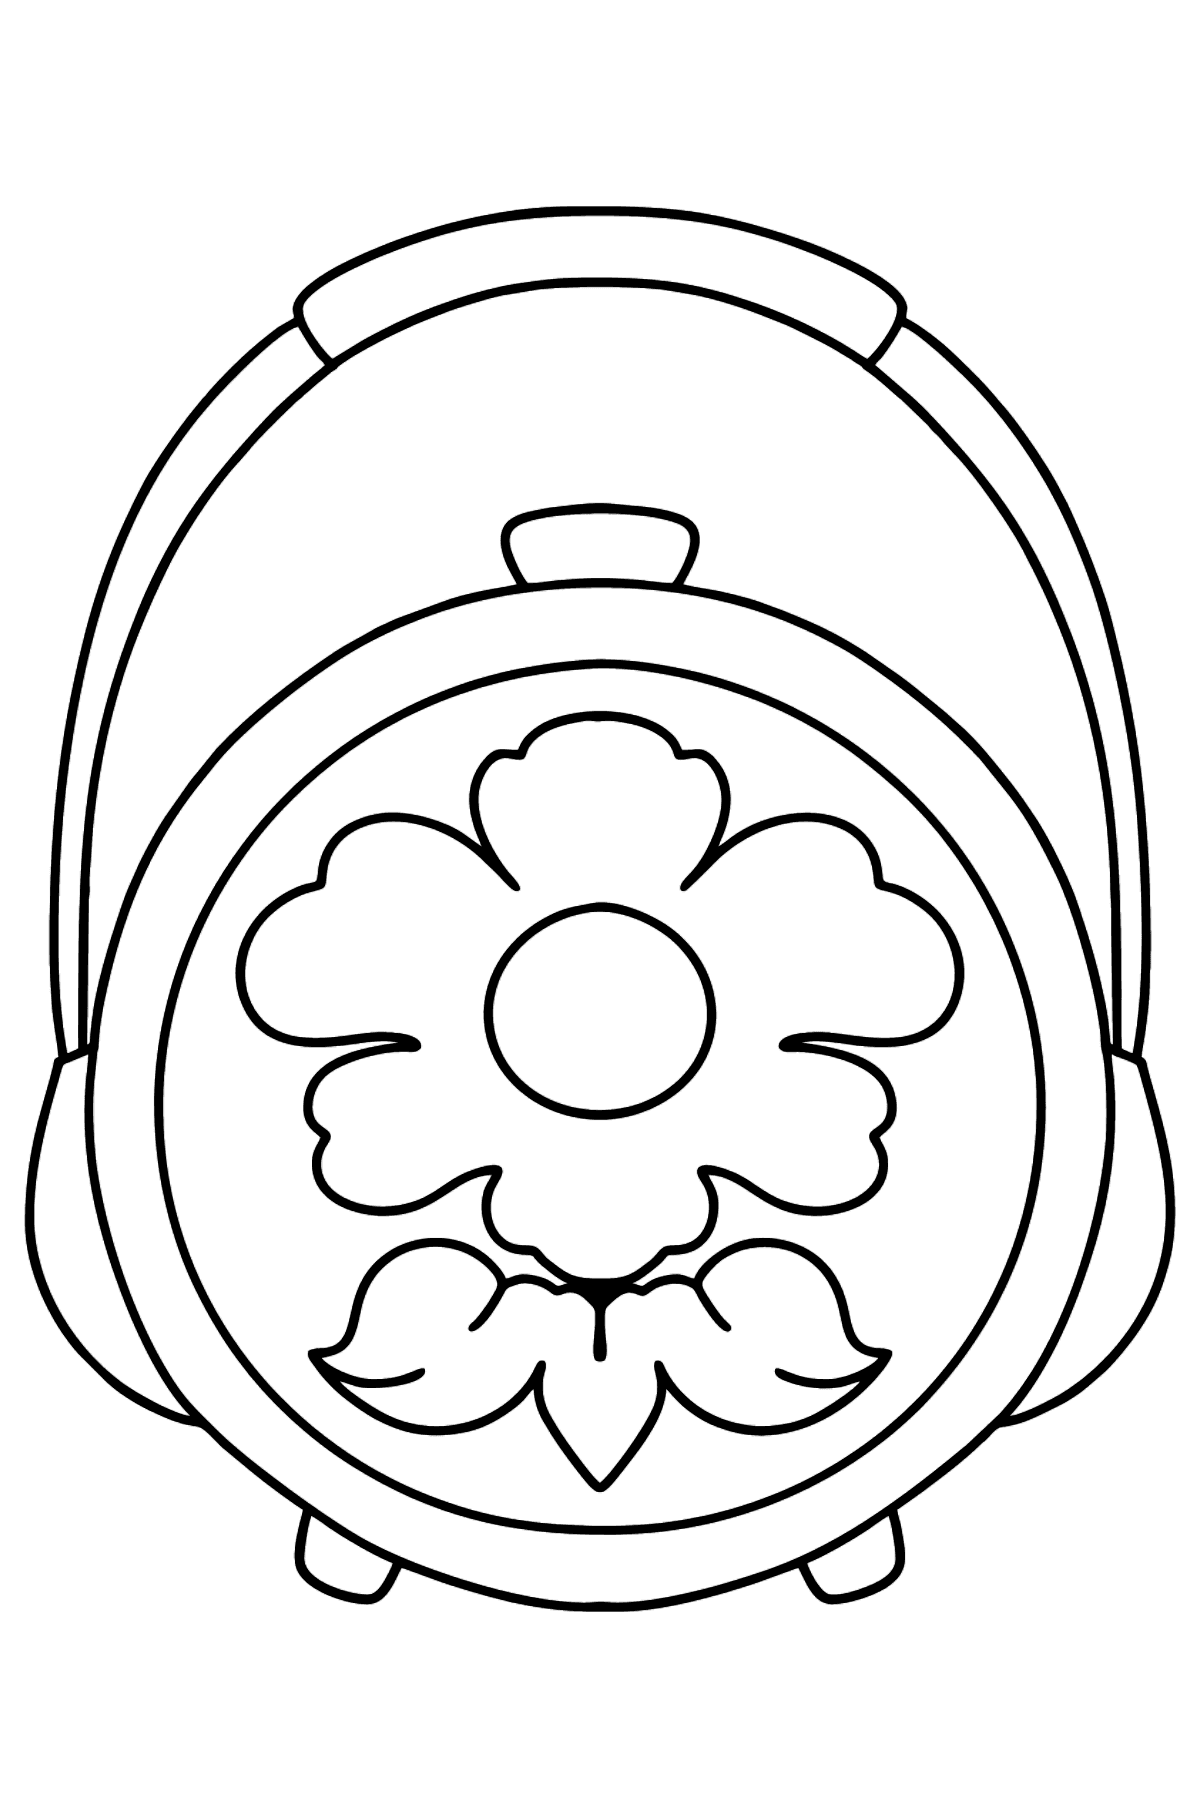 Beautiful Bag coloring page - Coloring Pages for Kids